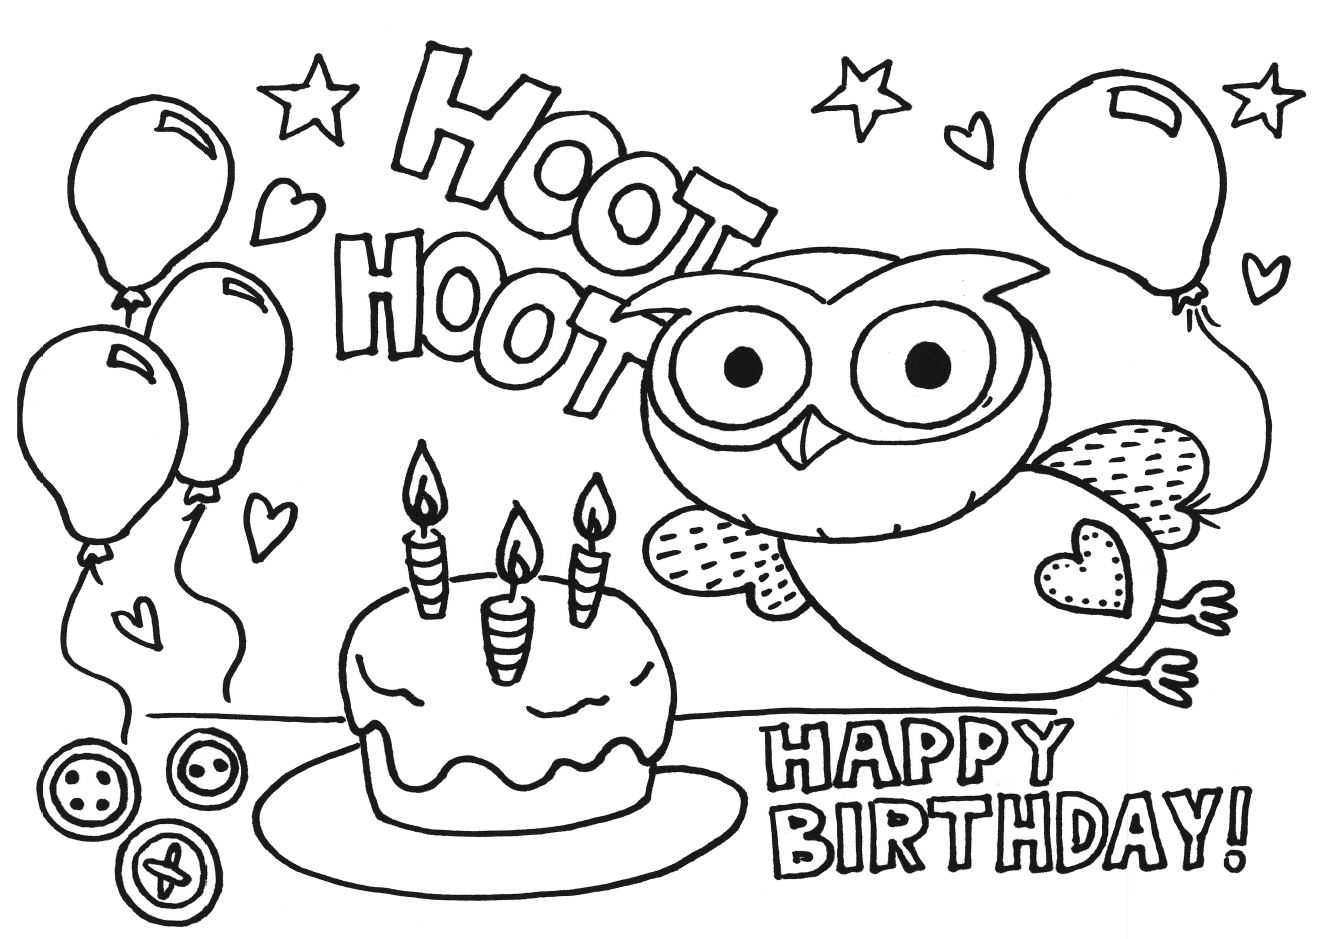 Giggle And Hoot Free Download Colouring Pages Birthday Party Activities For Young Kids